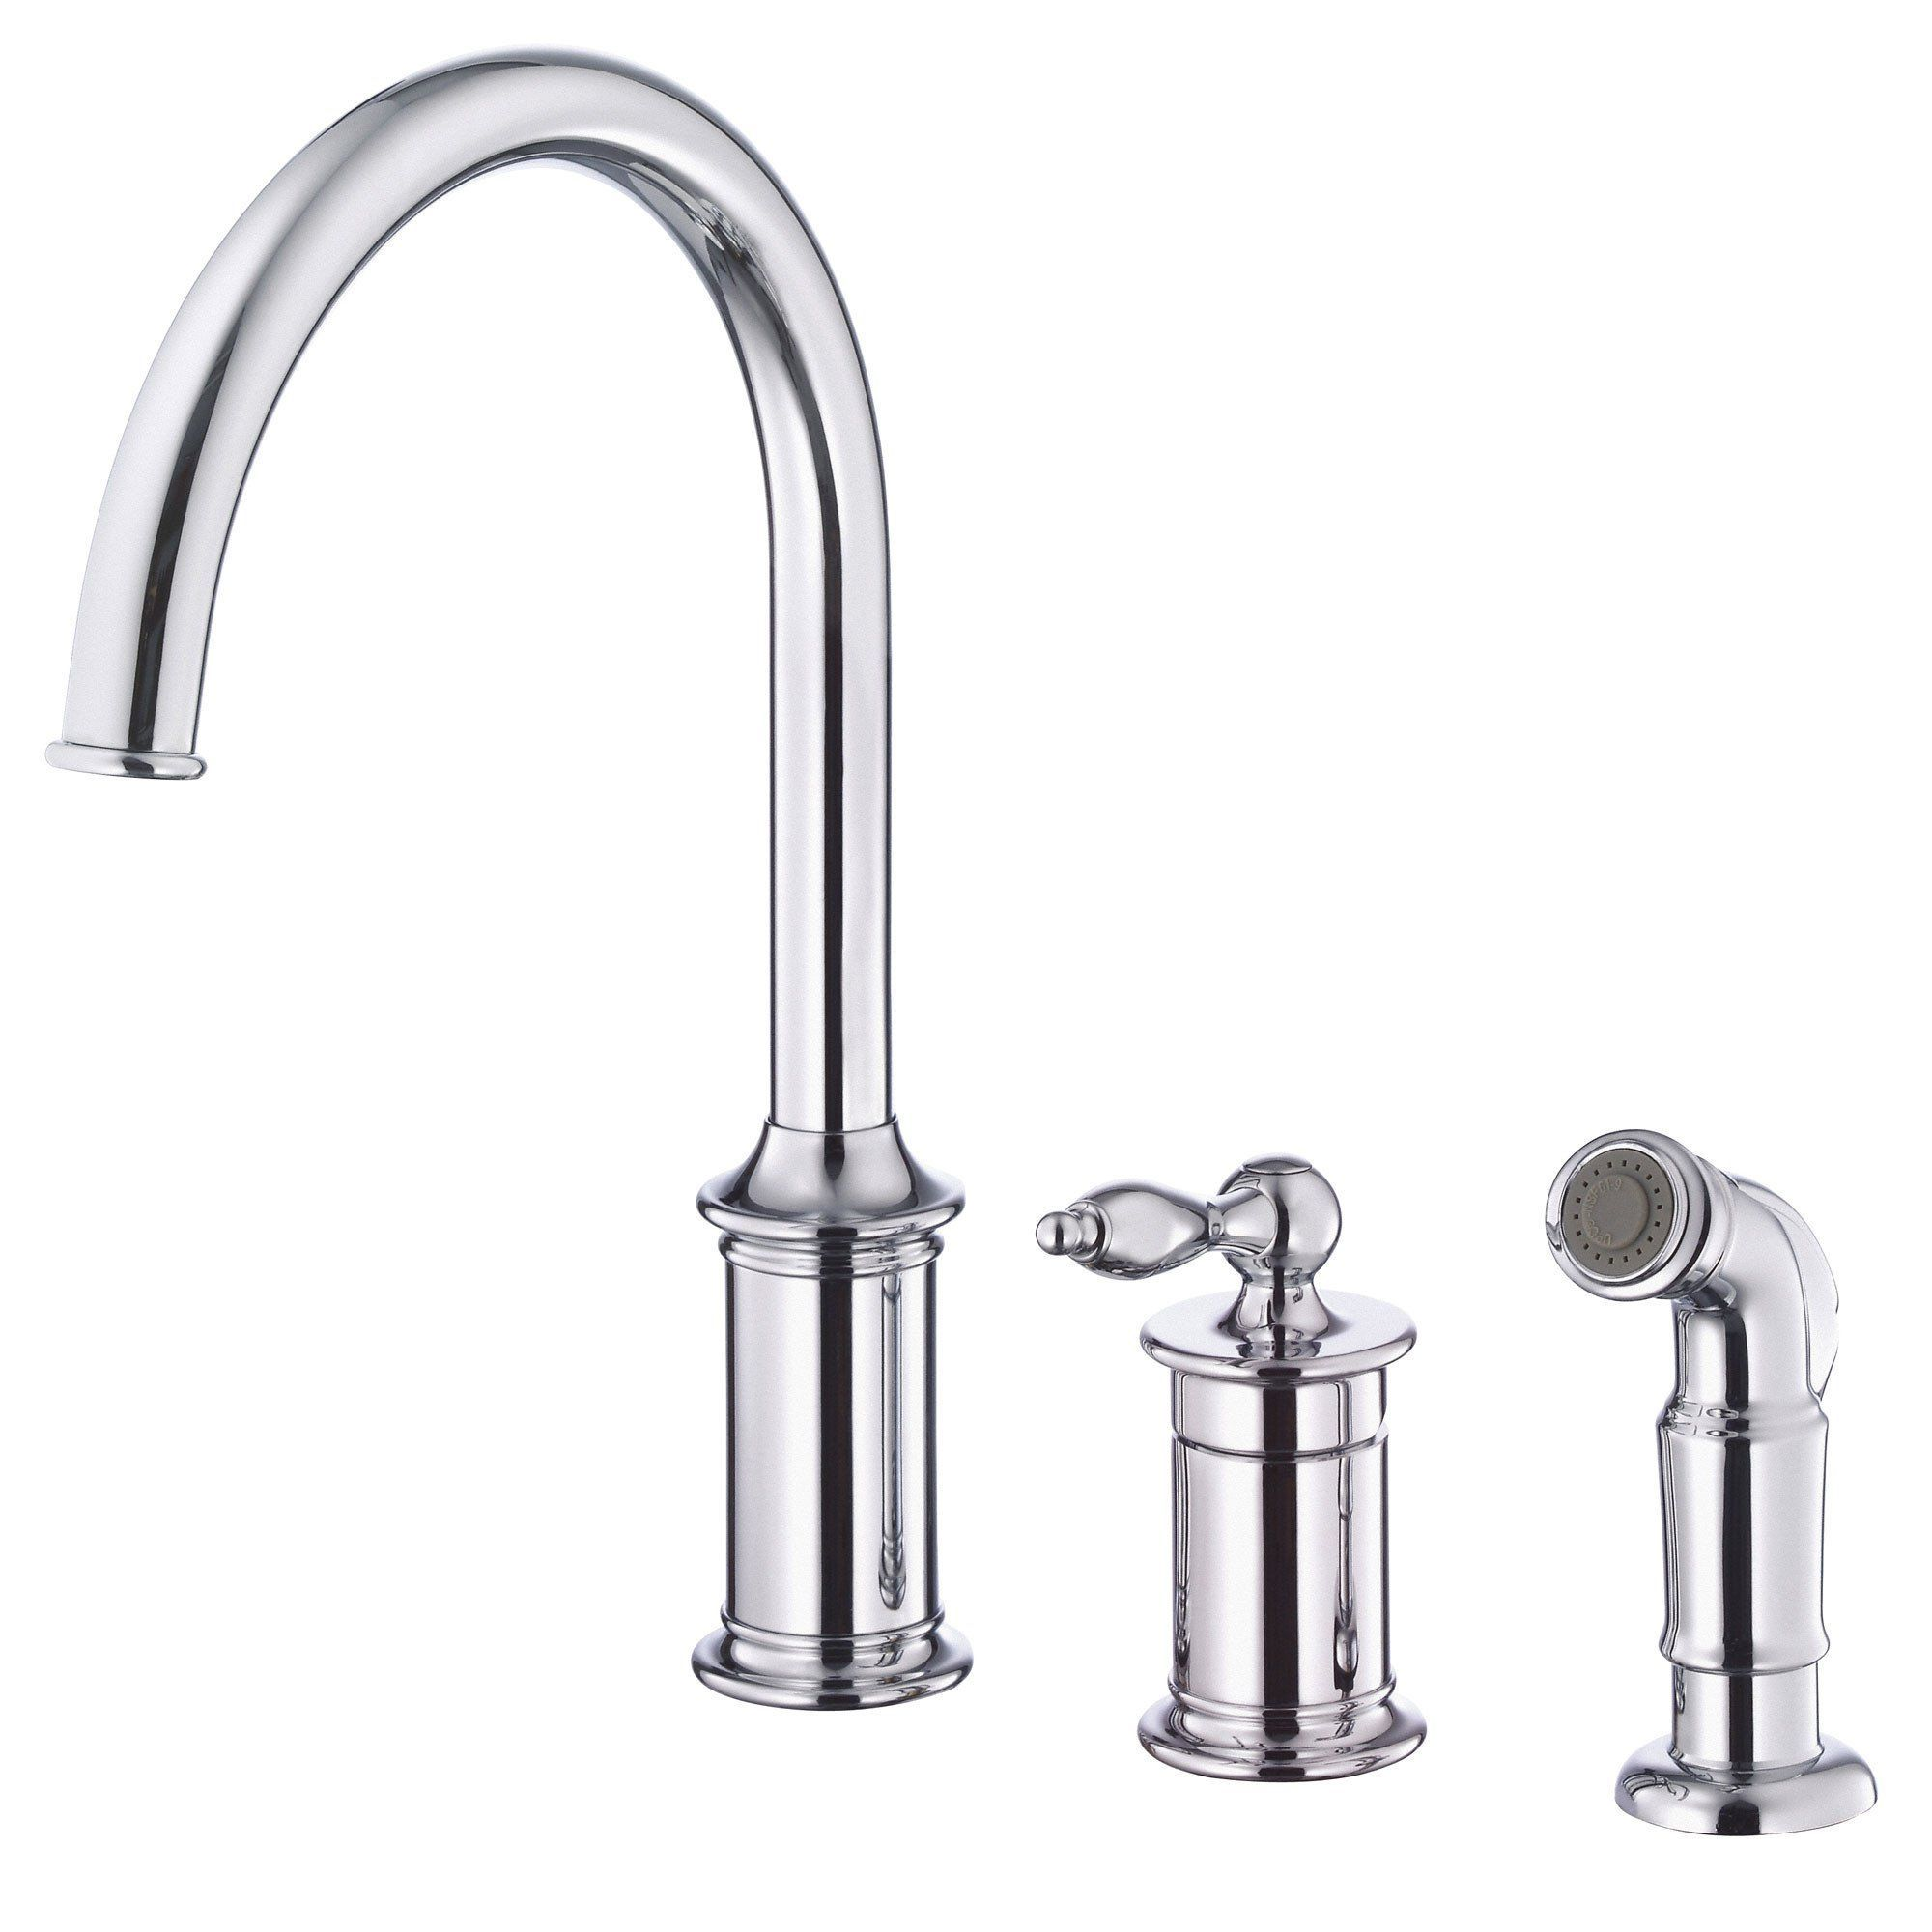 Captivating Danze Prince Chrome Single Handle 3 Hole Widespread Kitchen Faucet With  Sprayer